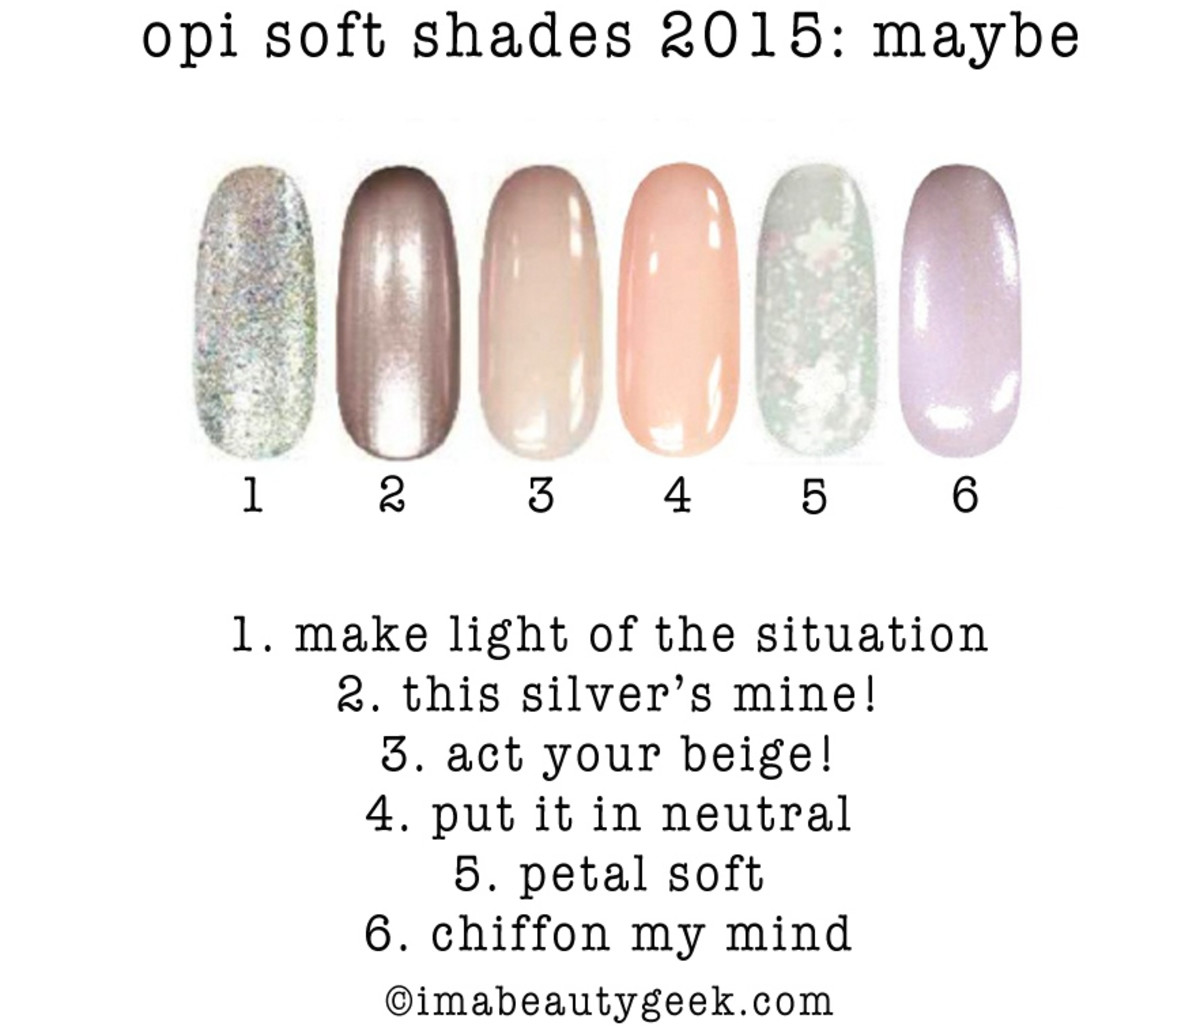 opi soft shades 2015